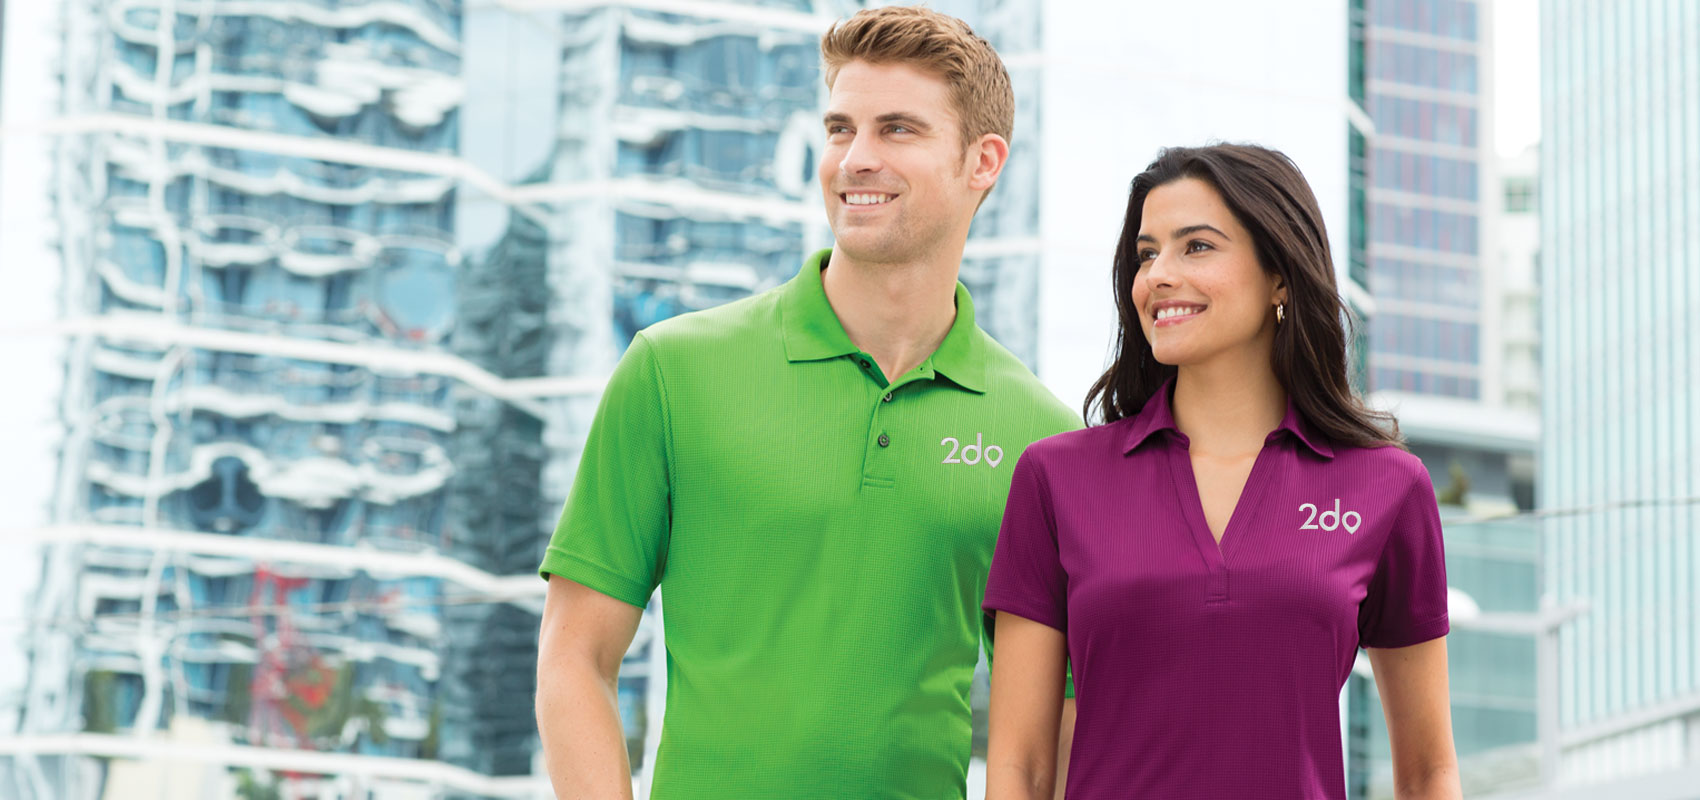 4 reasons for custom polo shirts for your business